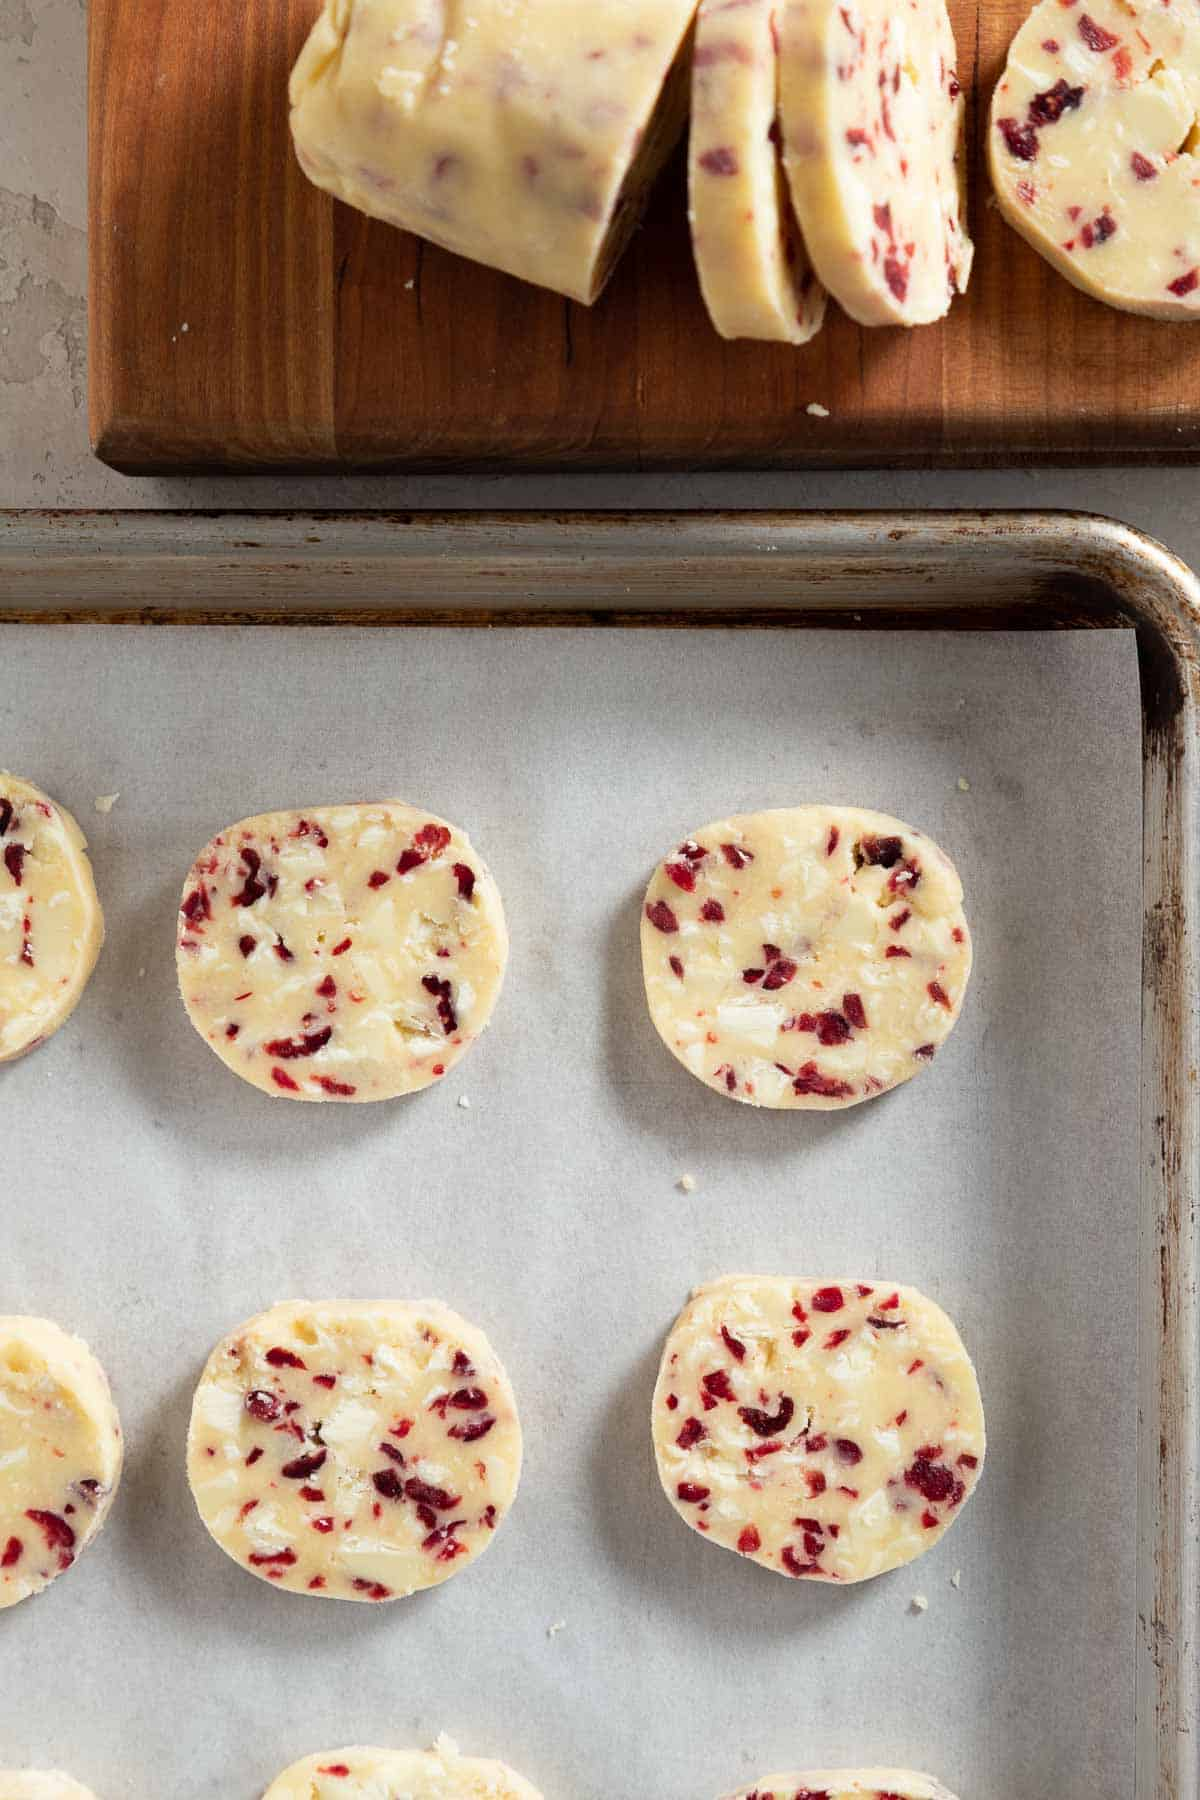 slices of cranberry white chocolate shortbread cookie dough on a baking sheet with a log of dough being cut at the top of the image